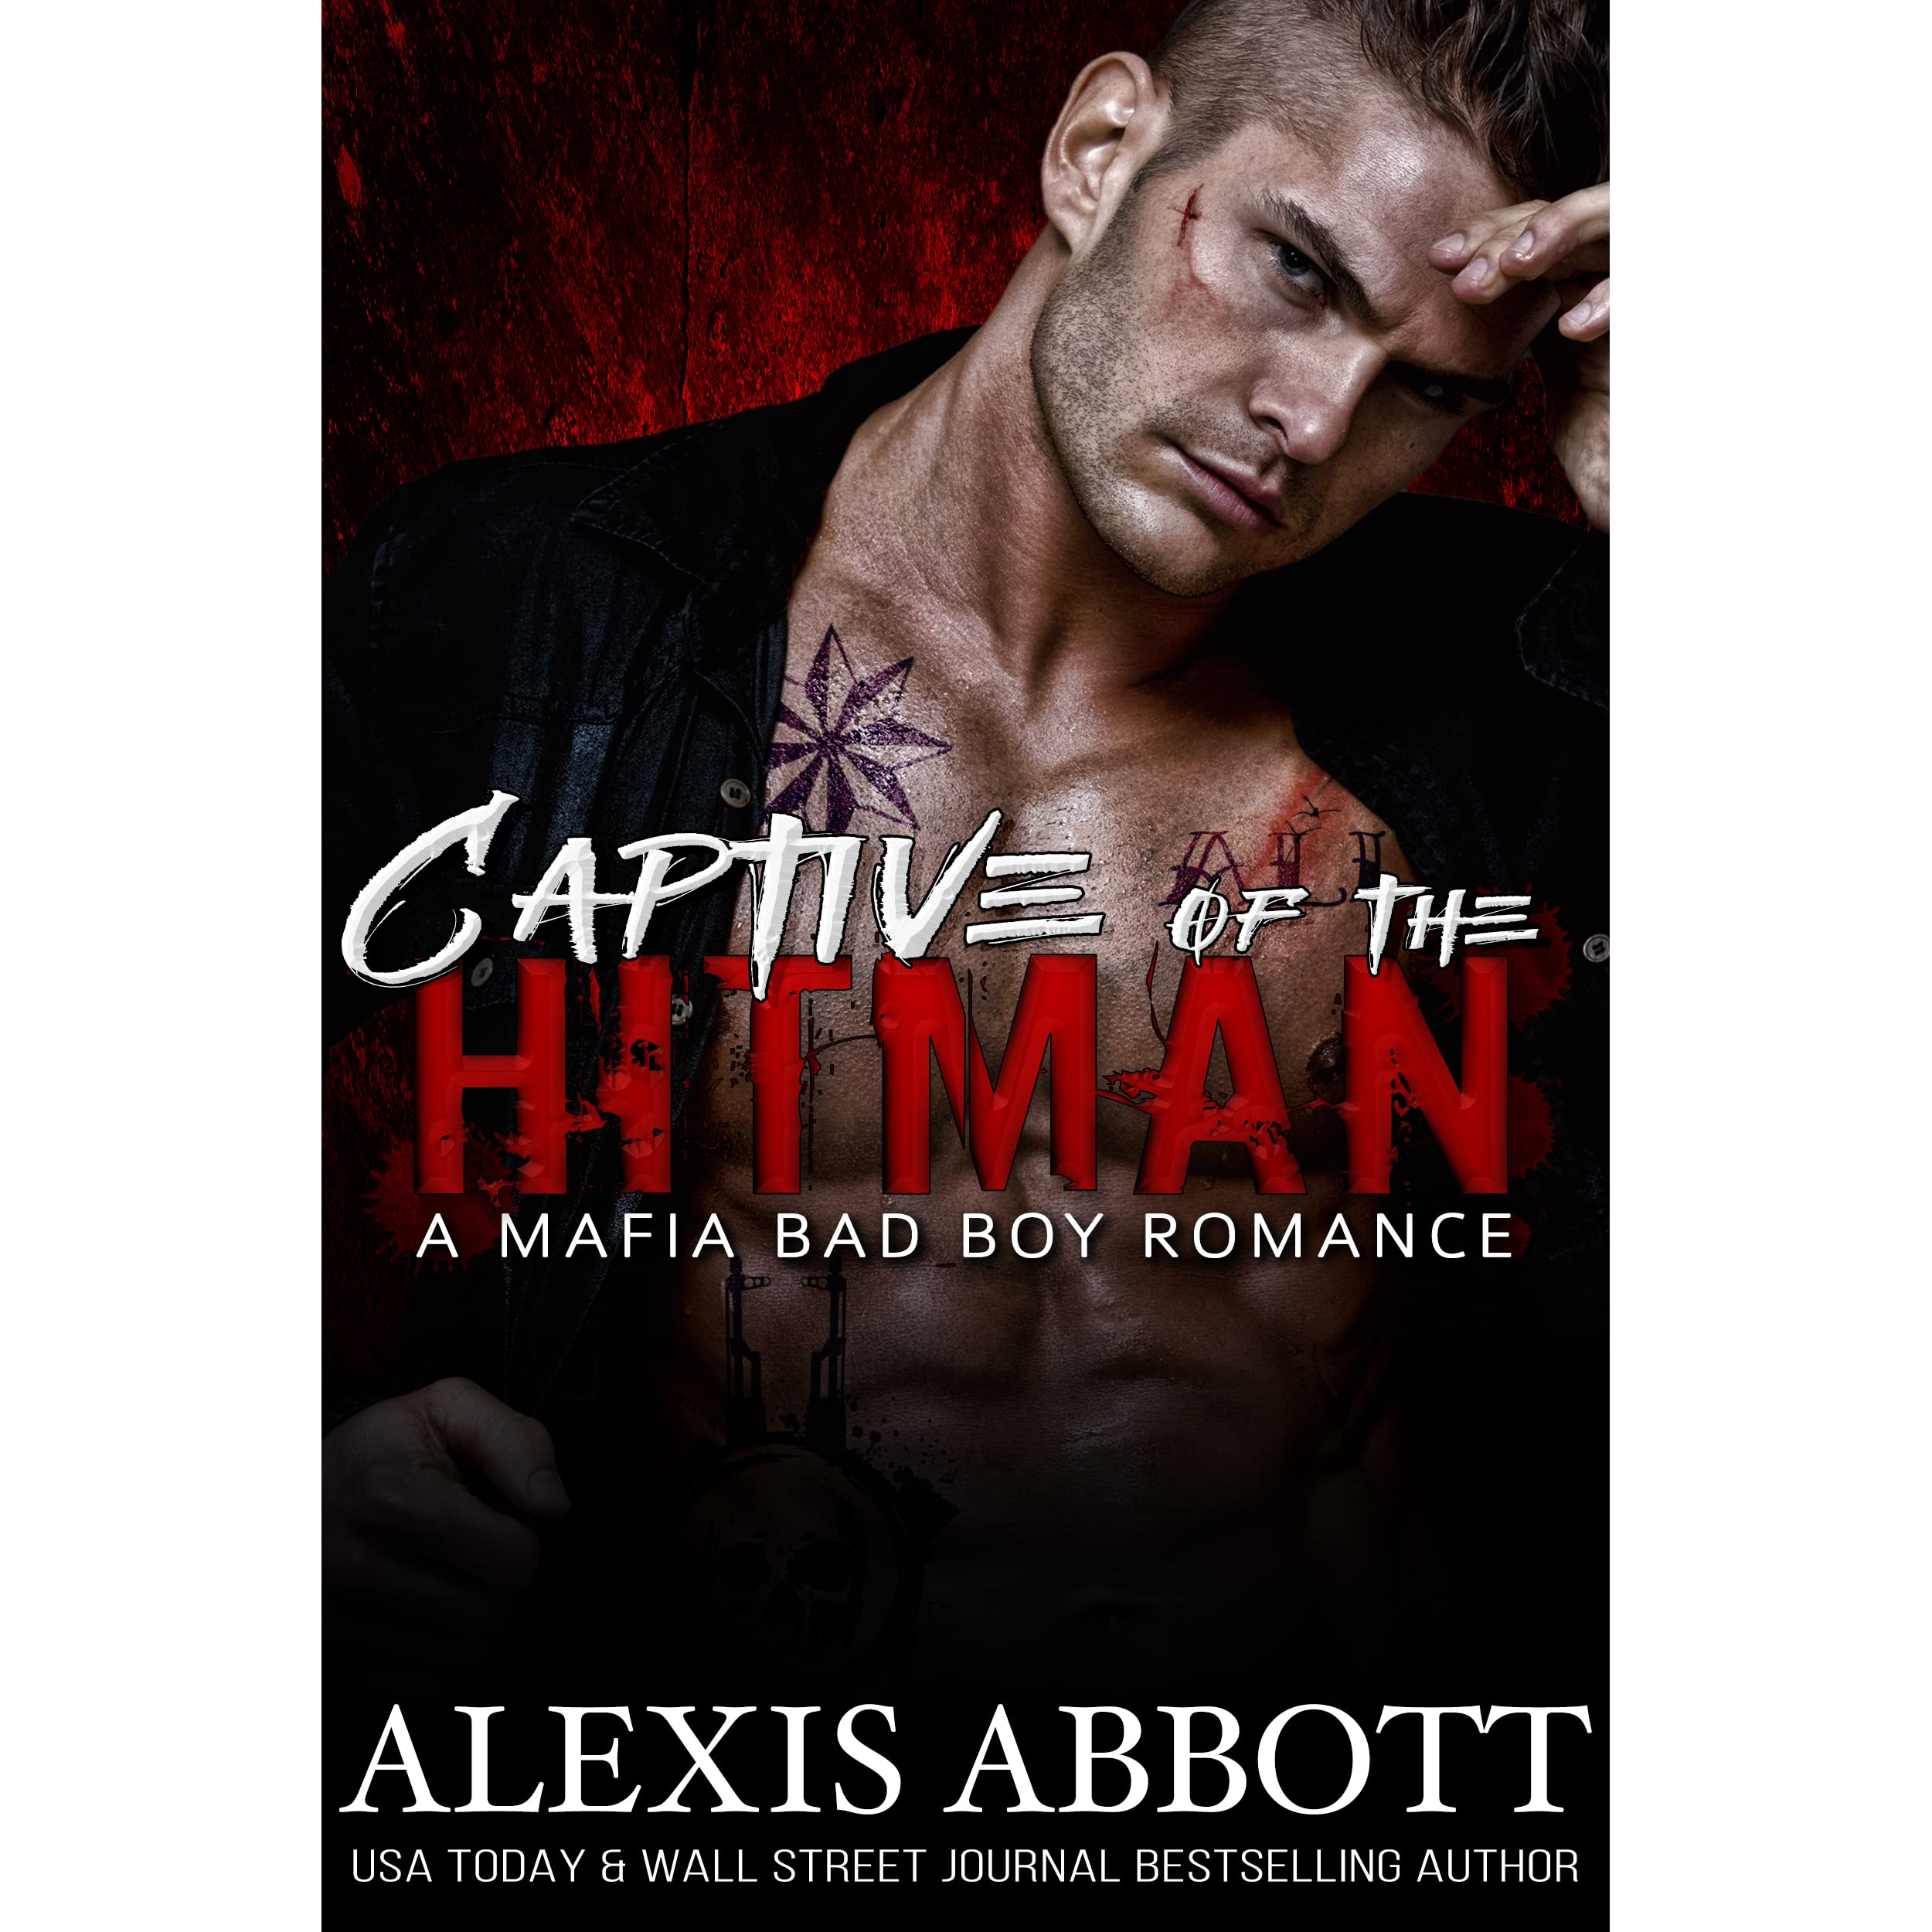 Captive in the dark goodreads giveaways